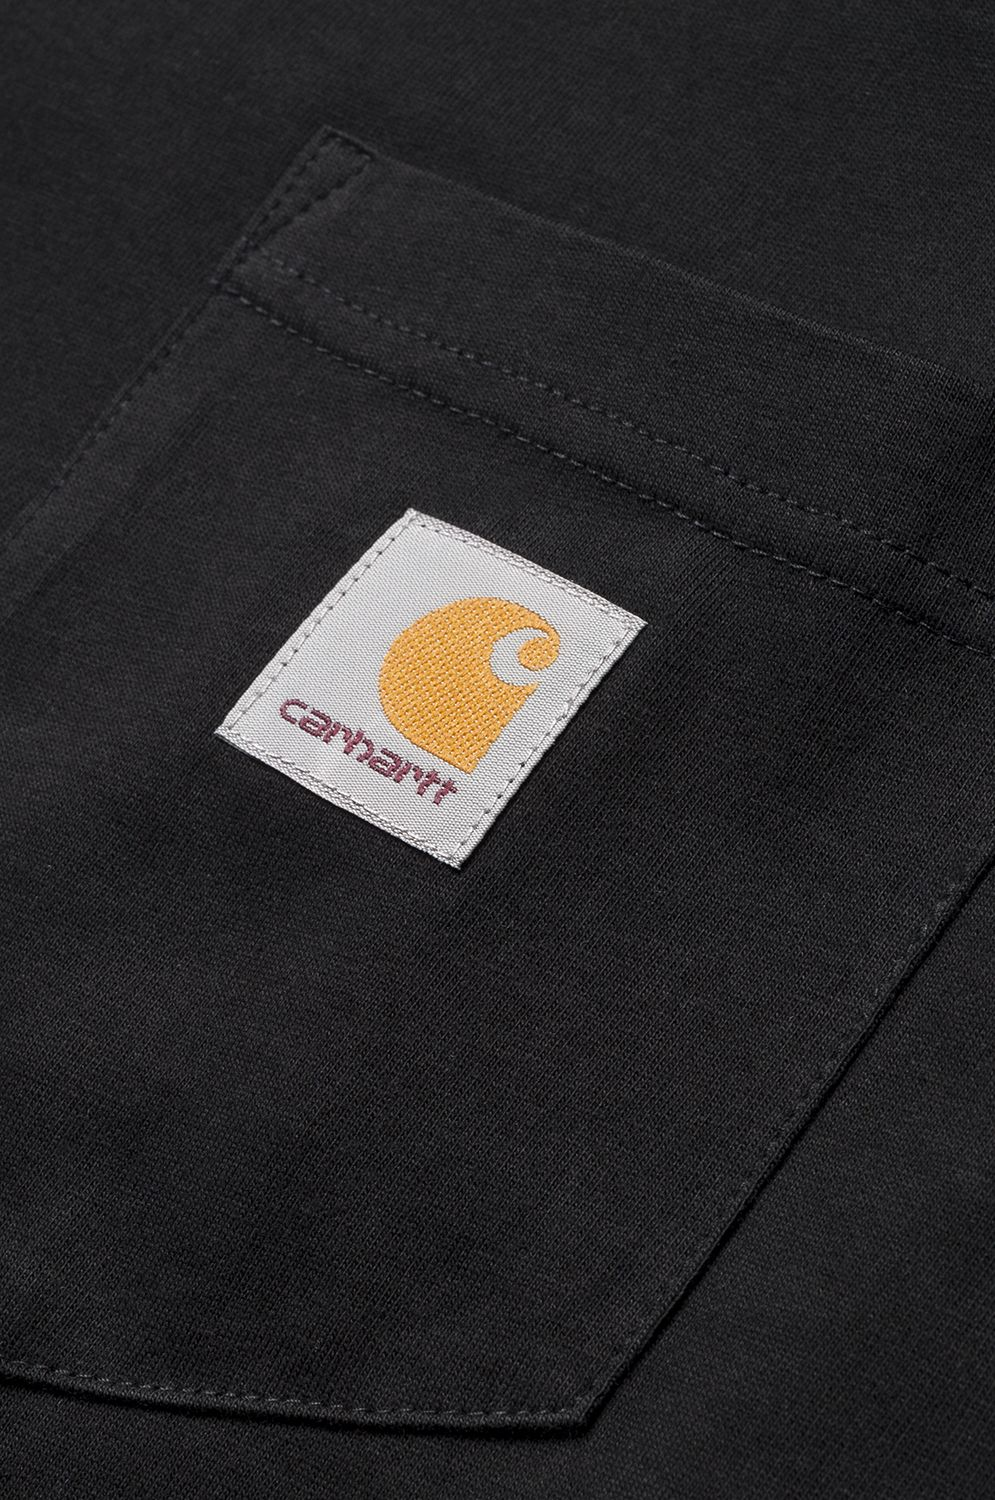 T-Shirt Carhartt WIP POCKET Black